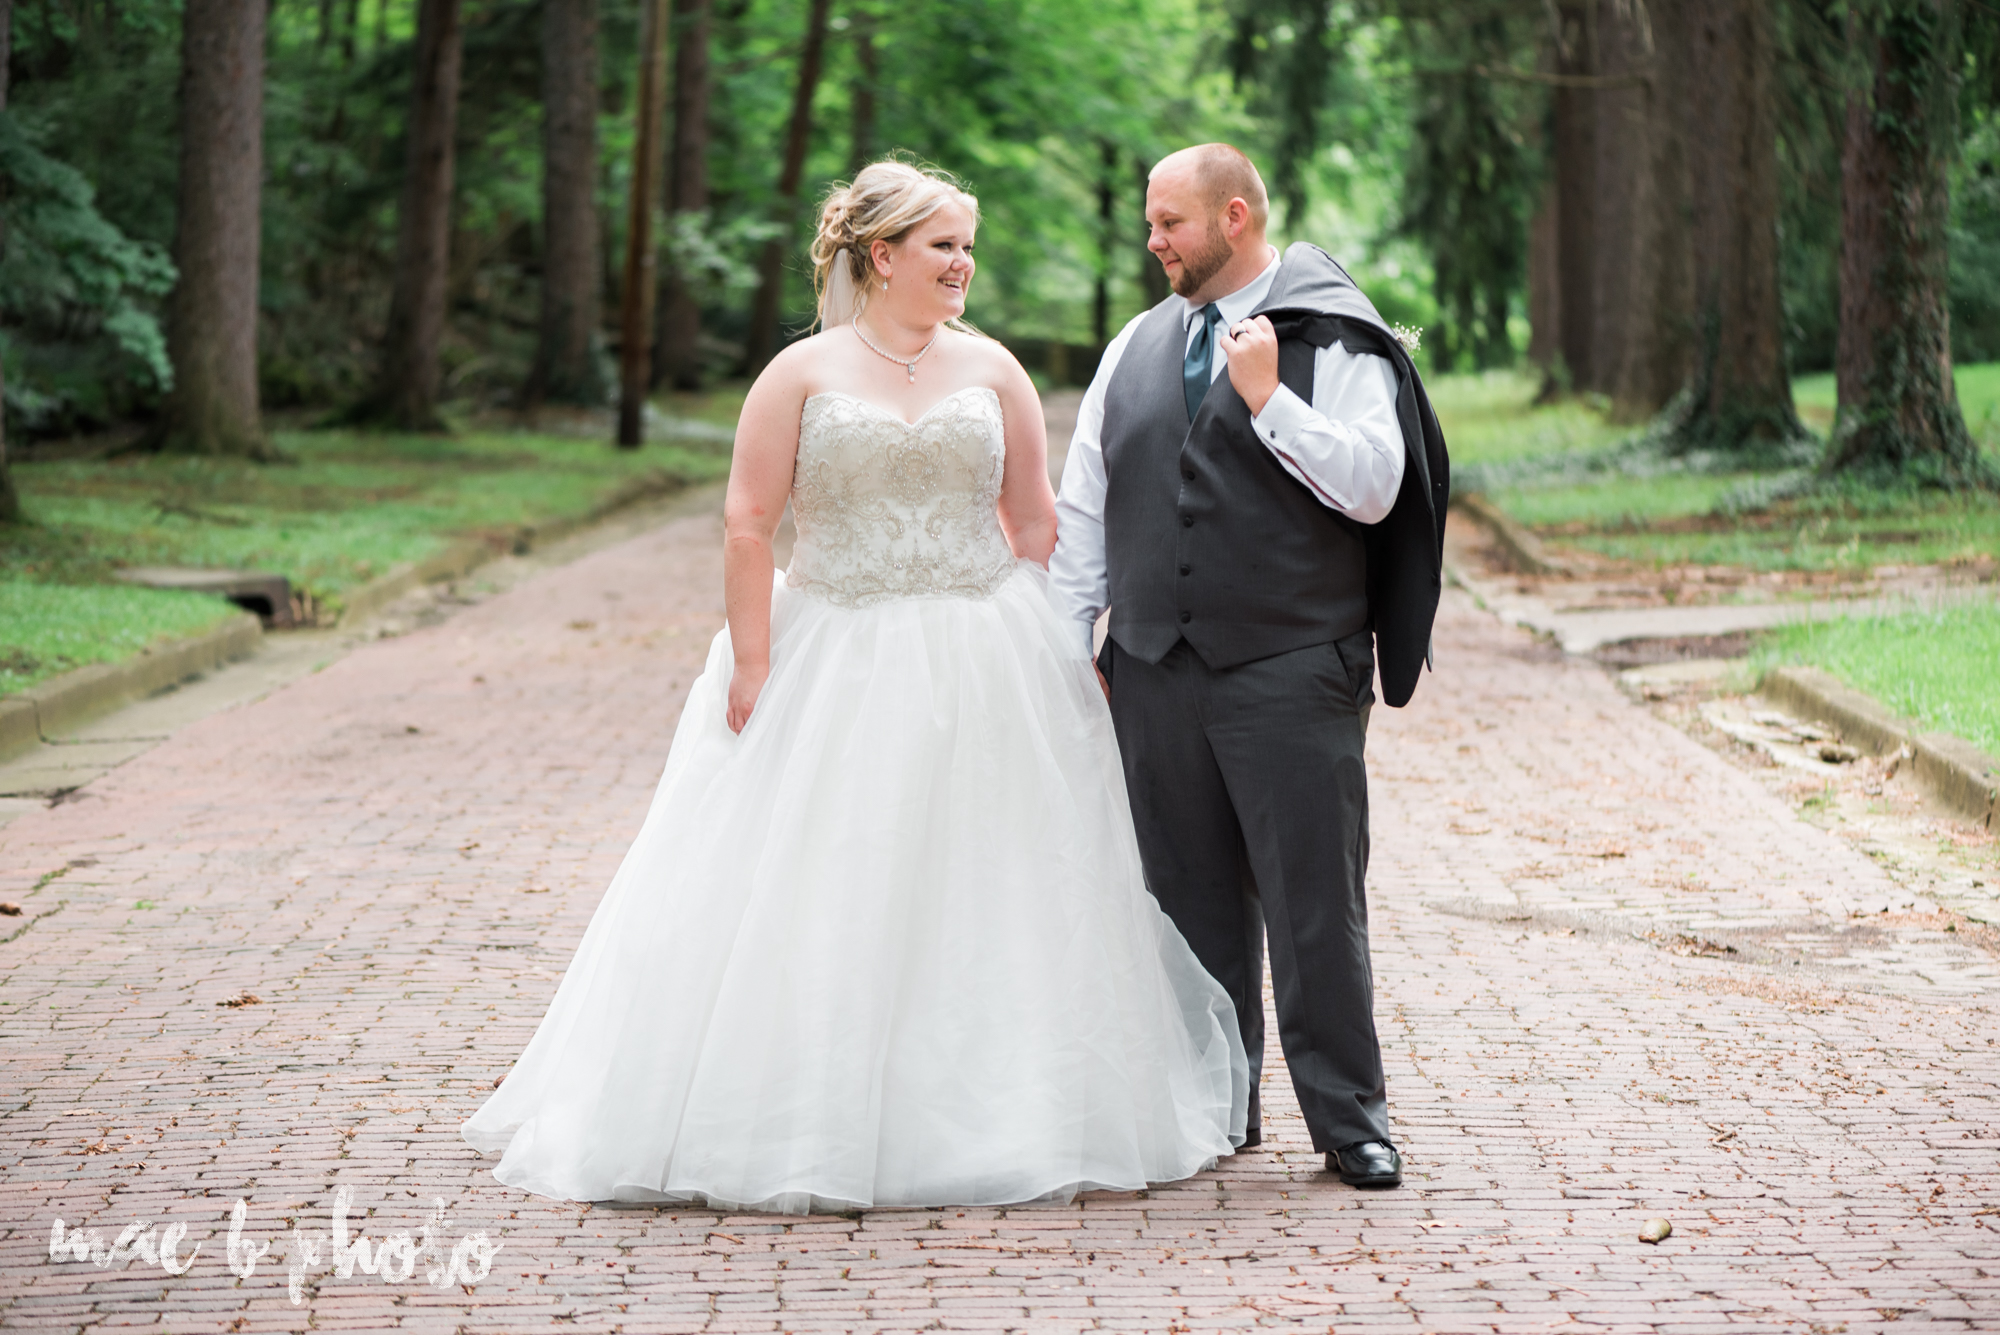 jenna and jay's personal fourth of july weekend wedding at mill creek park in youngstown ohio photographed by cleveland wedding photographer mae b photo-66.jpg